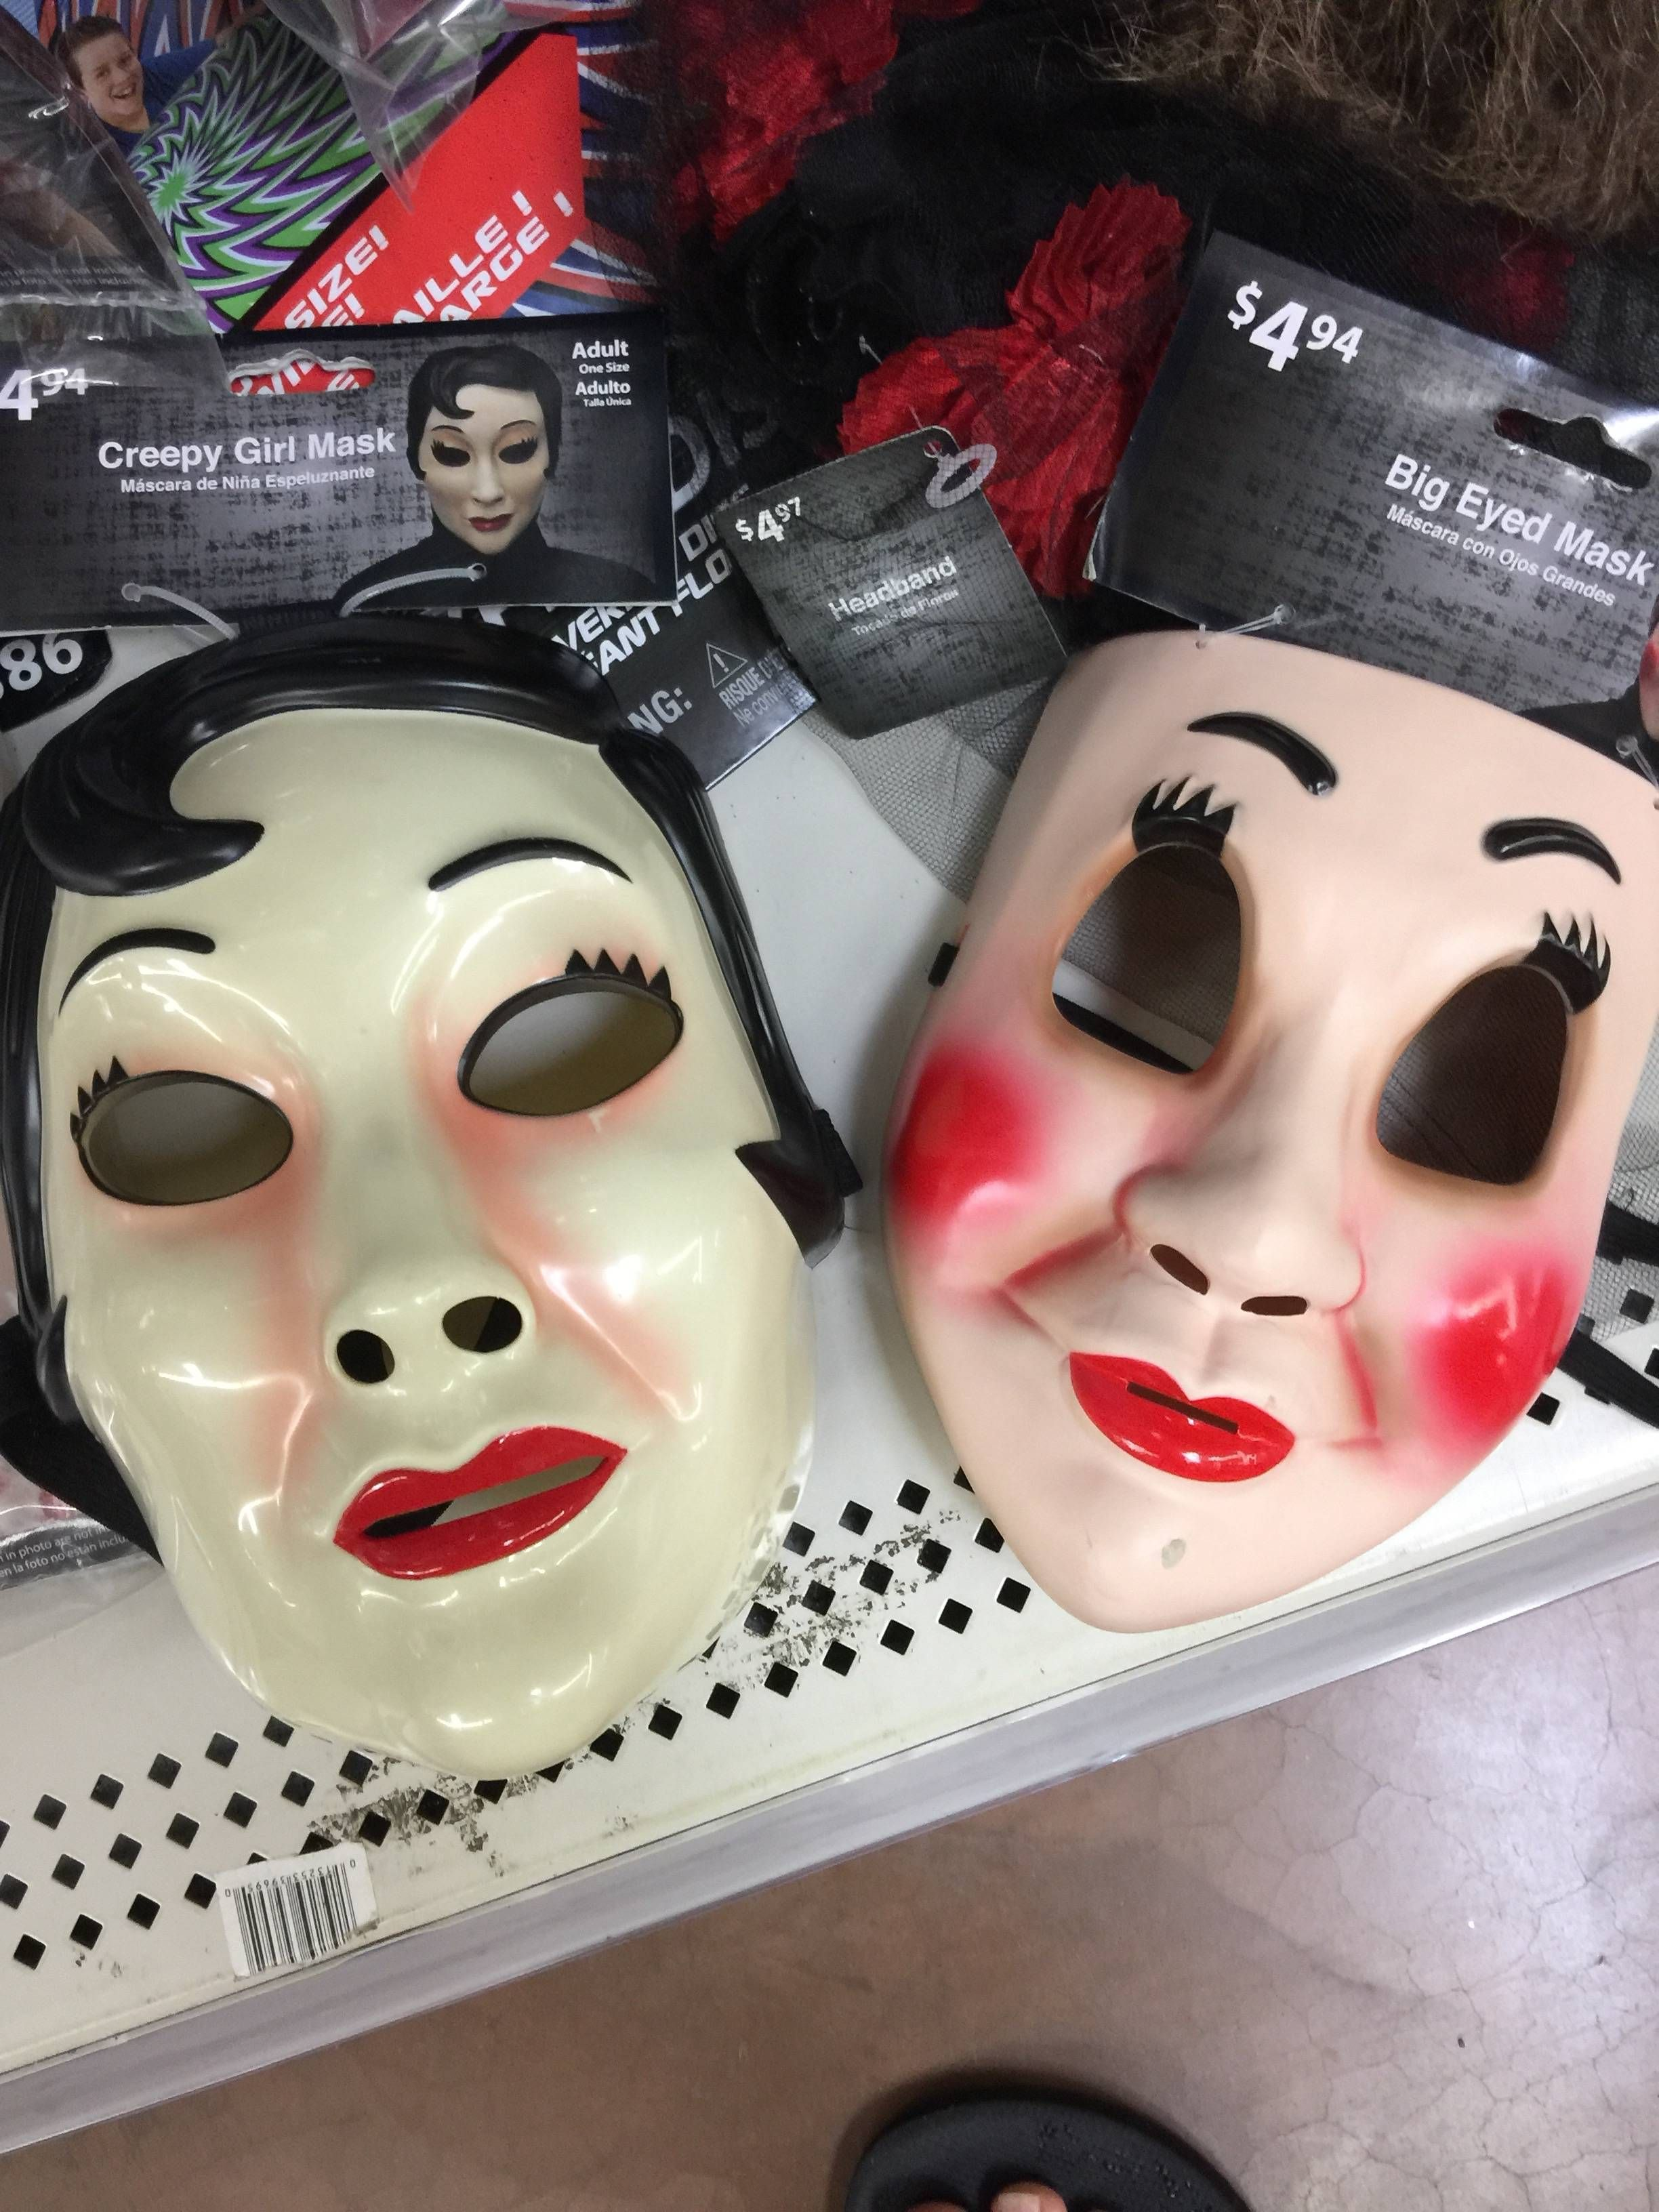 The Strangers knock-off masks available at Wal-Mart for Halloween ...